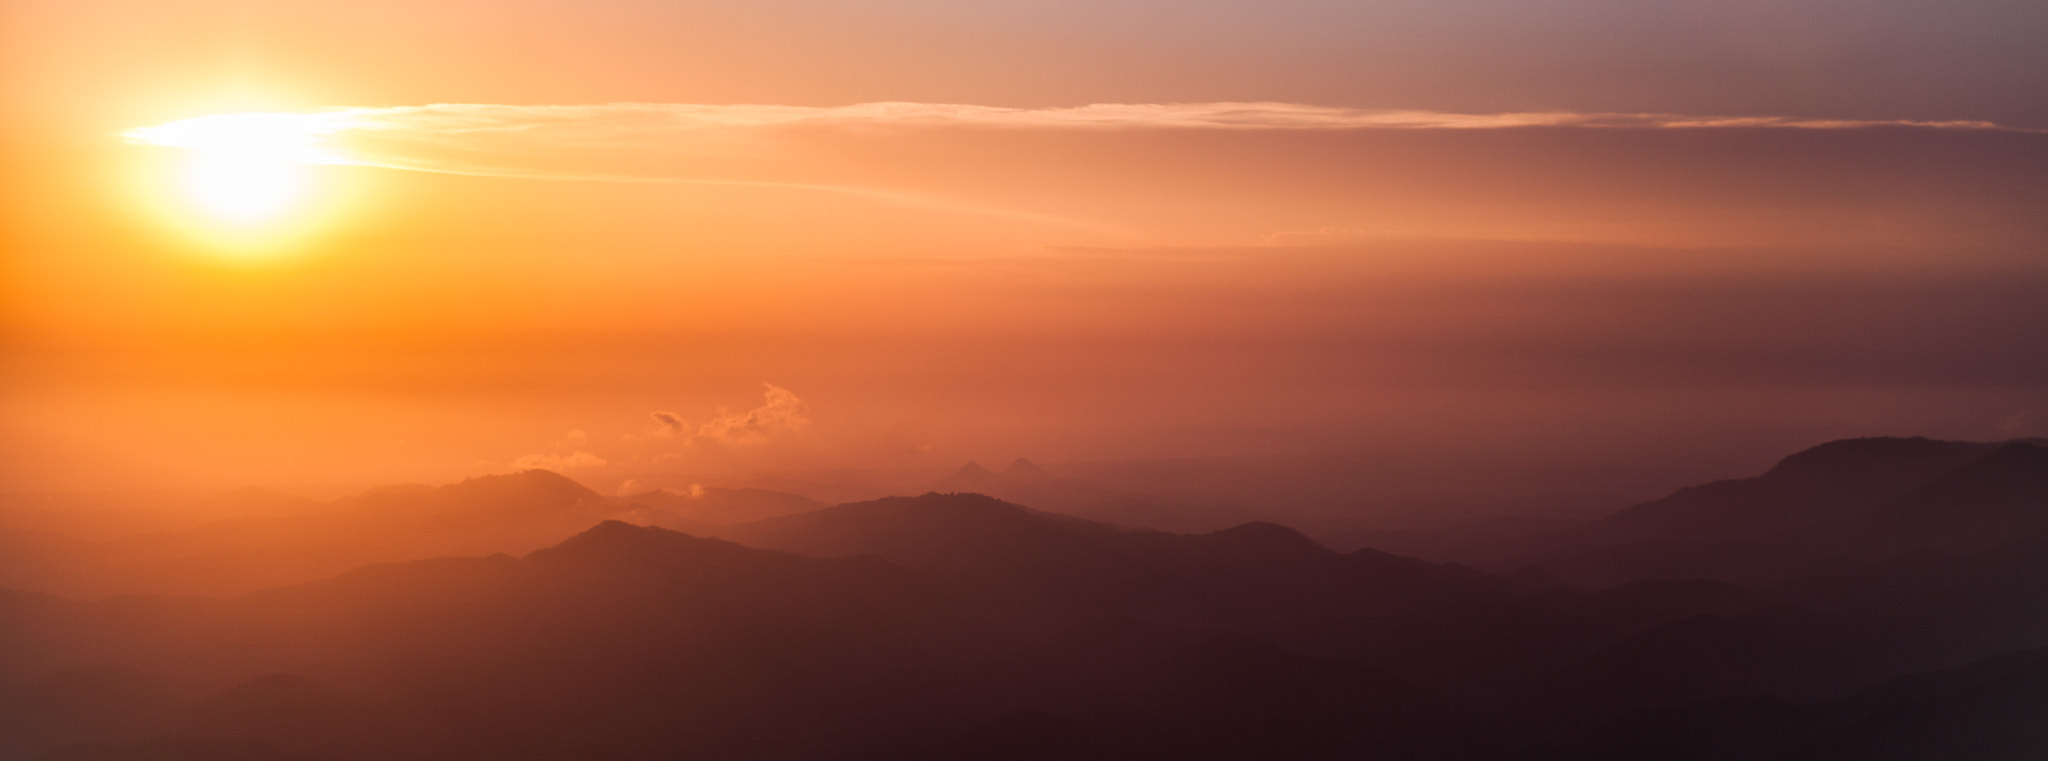 Photograph Sunrise at Mount Warning by Grant Kennedy on 500px